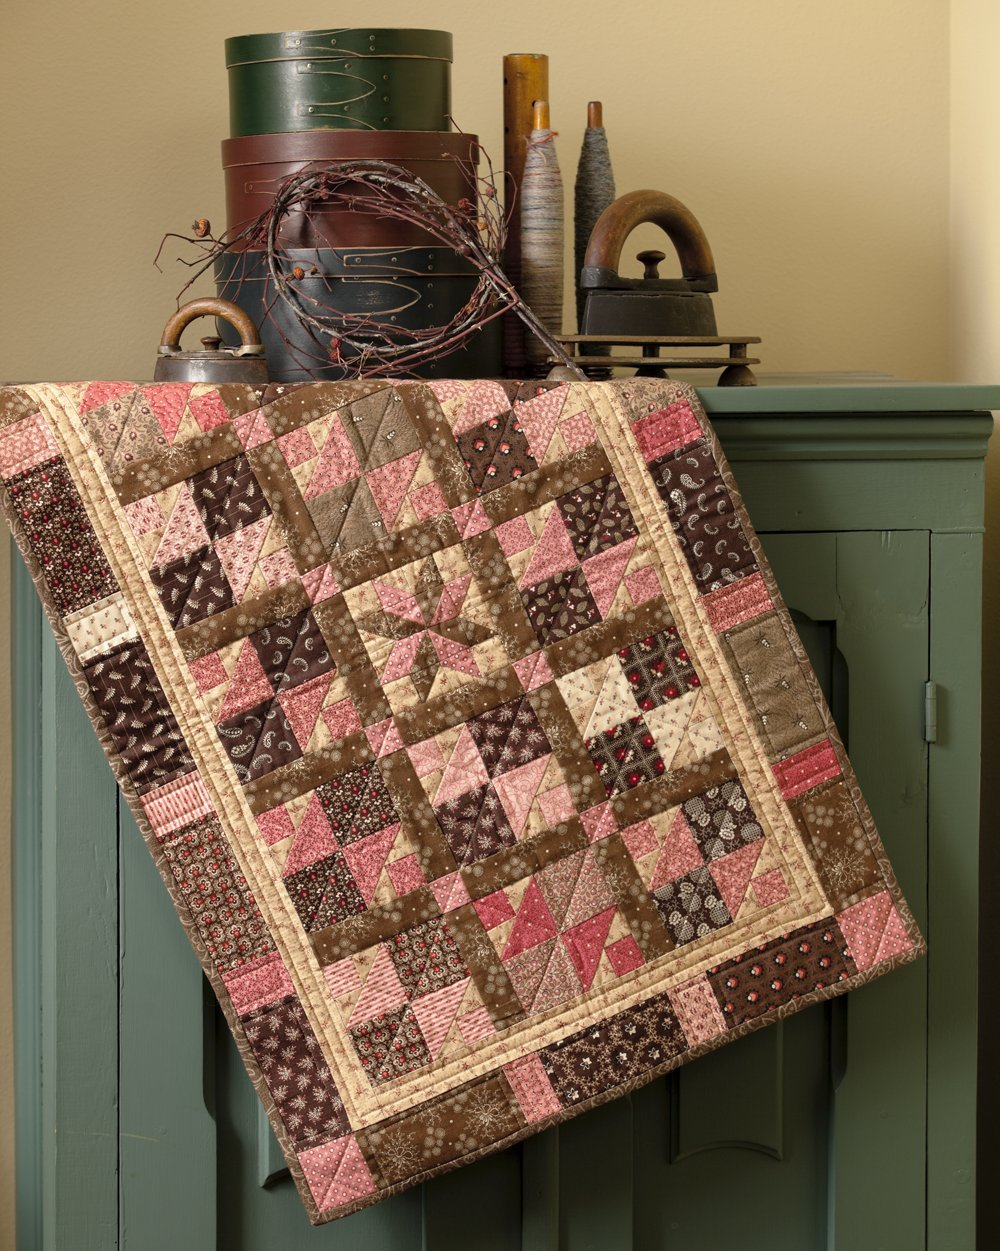 Country Threads Goes to Charm School: 19 Little Quilts from 5 ... : country threads quilt shop - Adamdwight.com